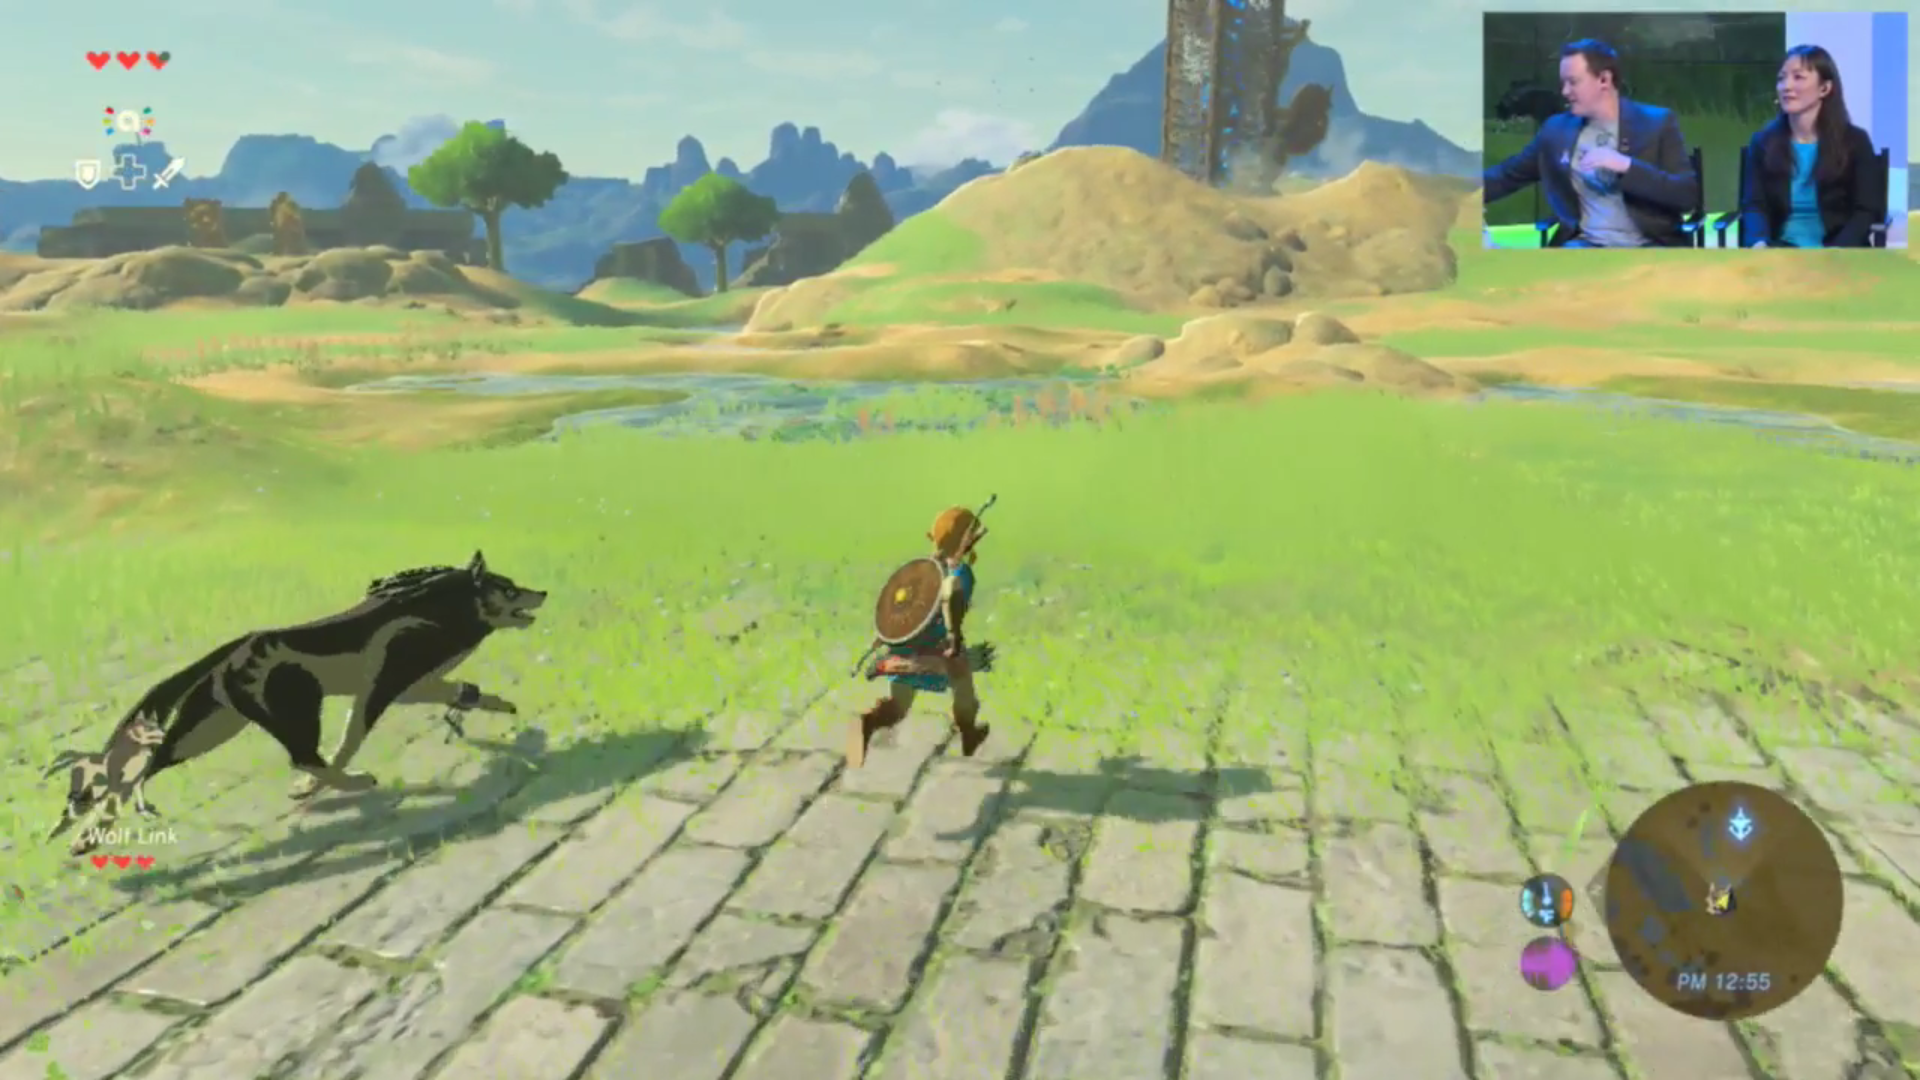 Nintendo rolls out Zelda: Breath of the Wild amiibos and